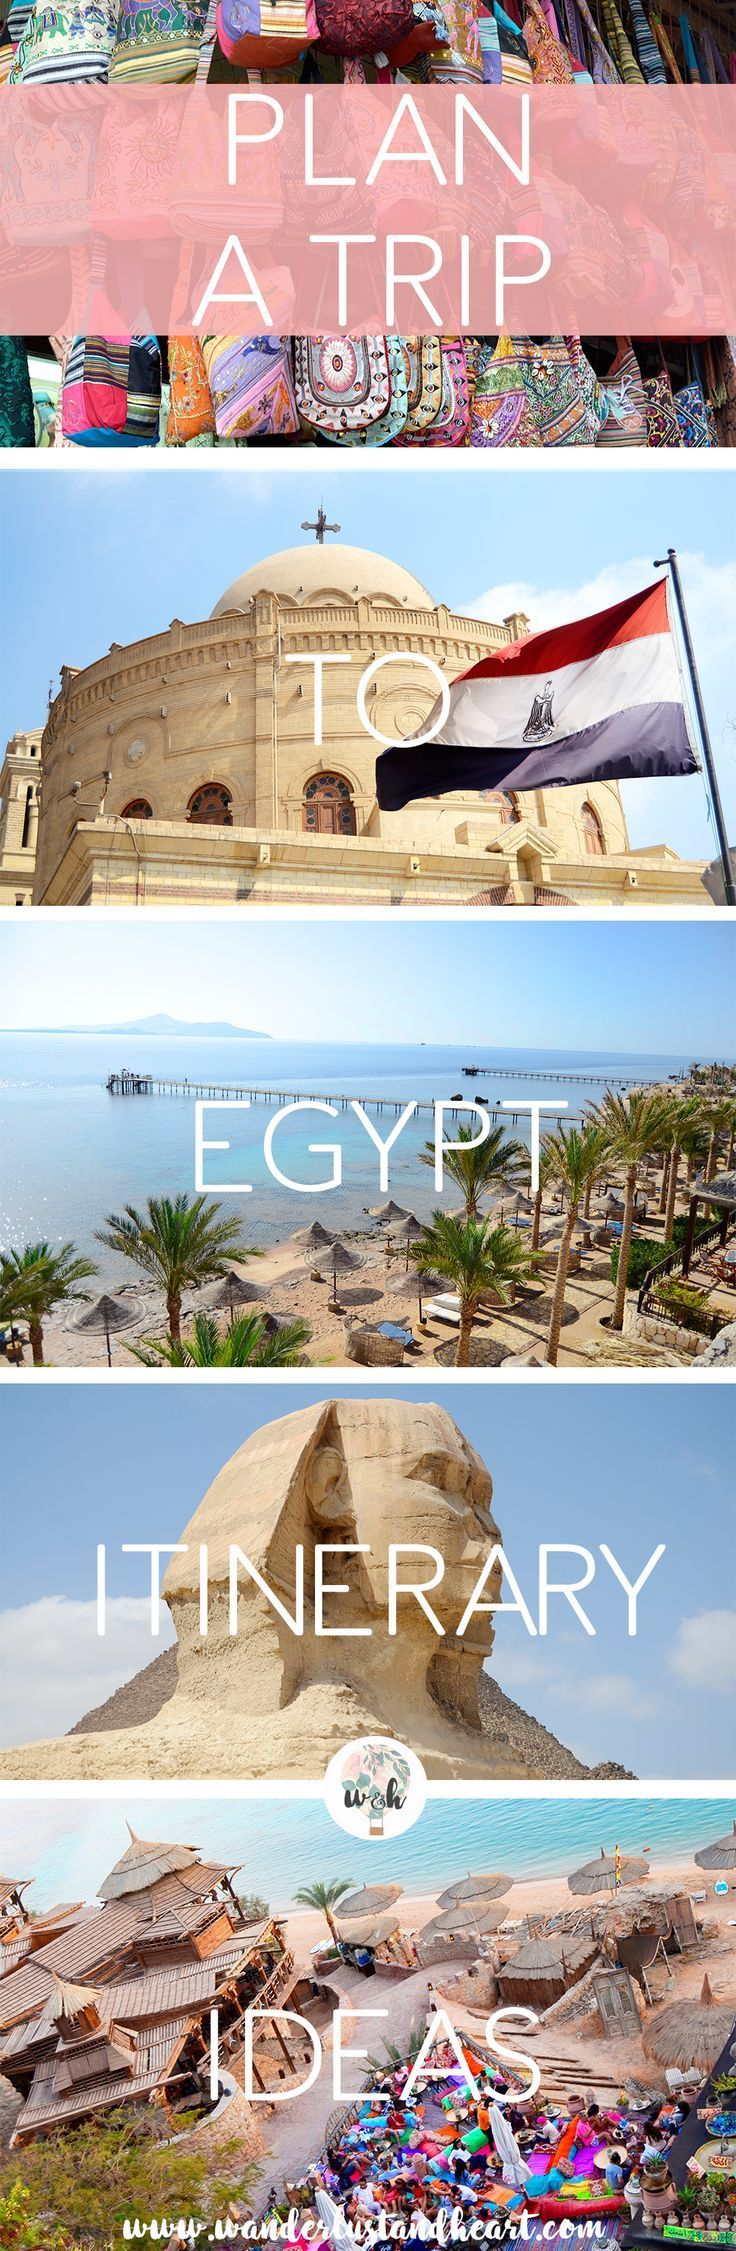 plan a trip to Egypt